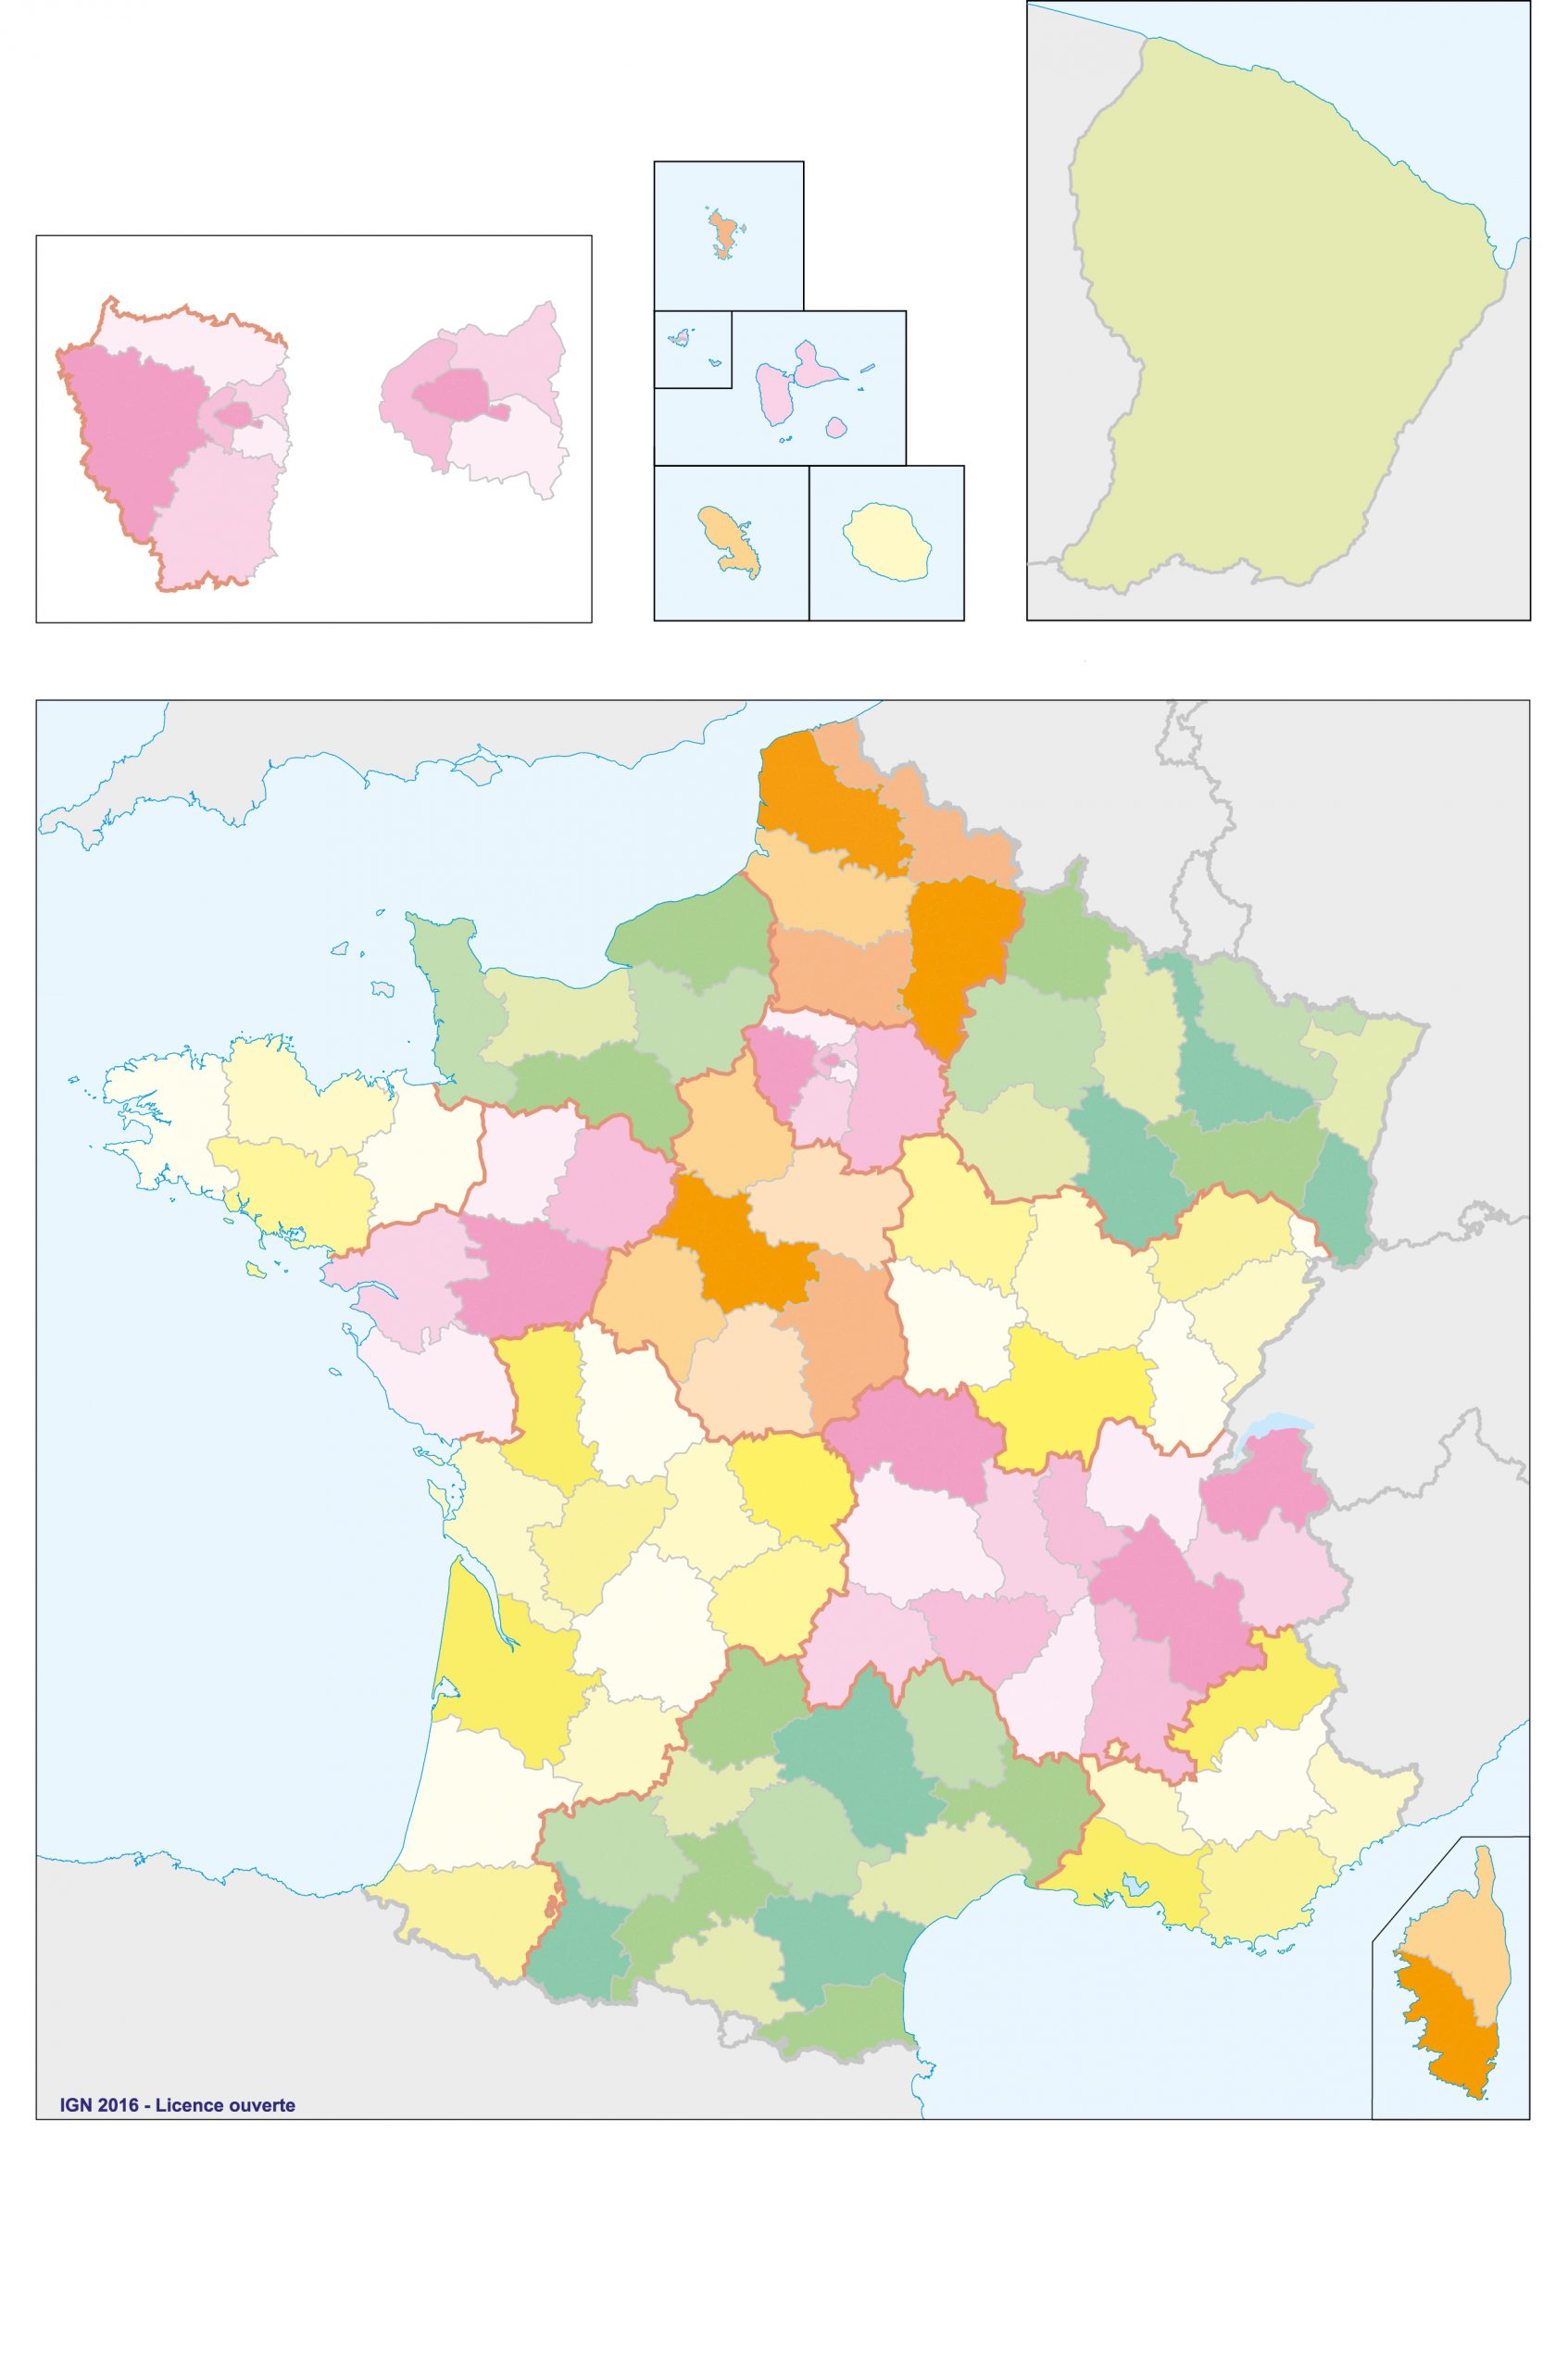 Fonds De Cartes | Éducation destiné Carte France D Outre Mer